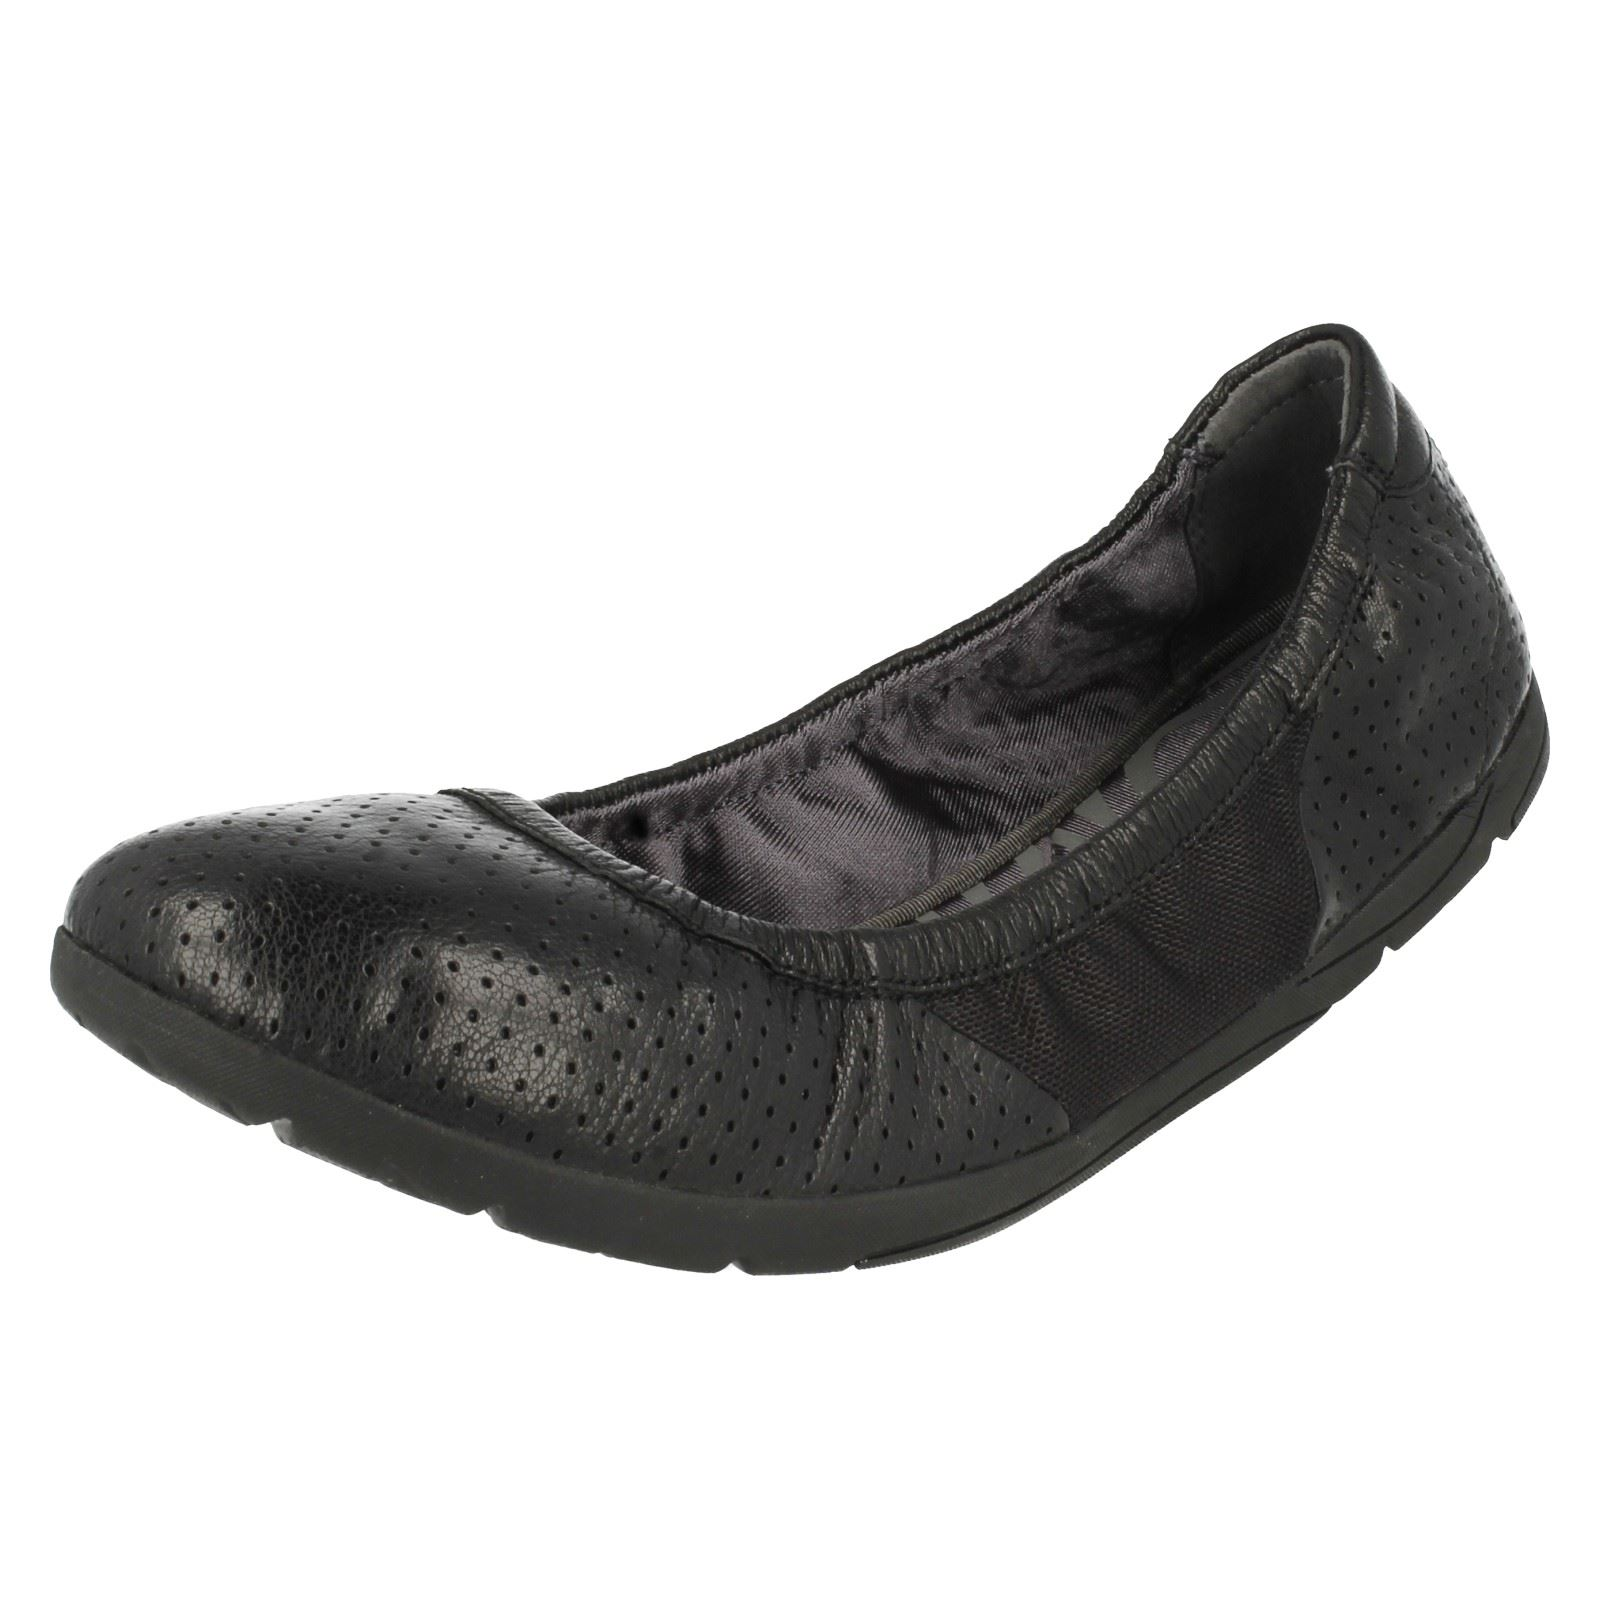 075cec2d0f7 Ladies Clarks Slip on Ballet PUMPS Illya Shine Black Leather UK 3 D. About  this product. Picture 1 of 10  Picture 2 of 10 ...